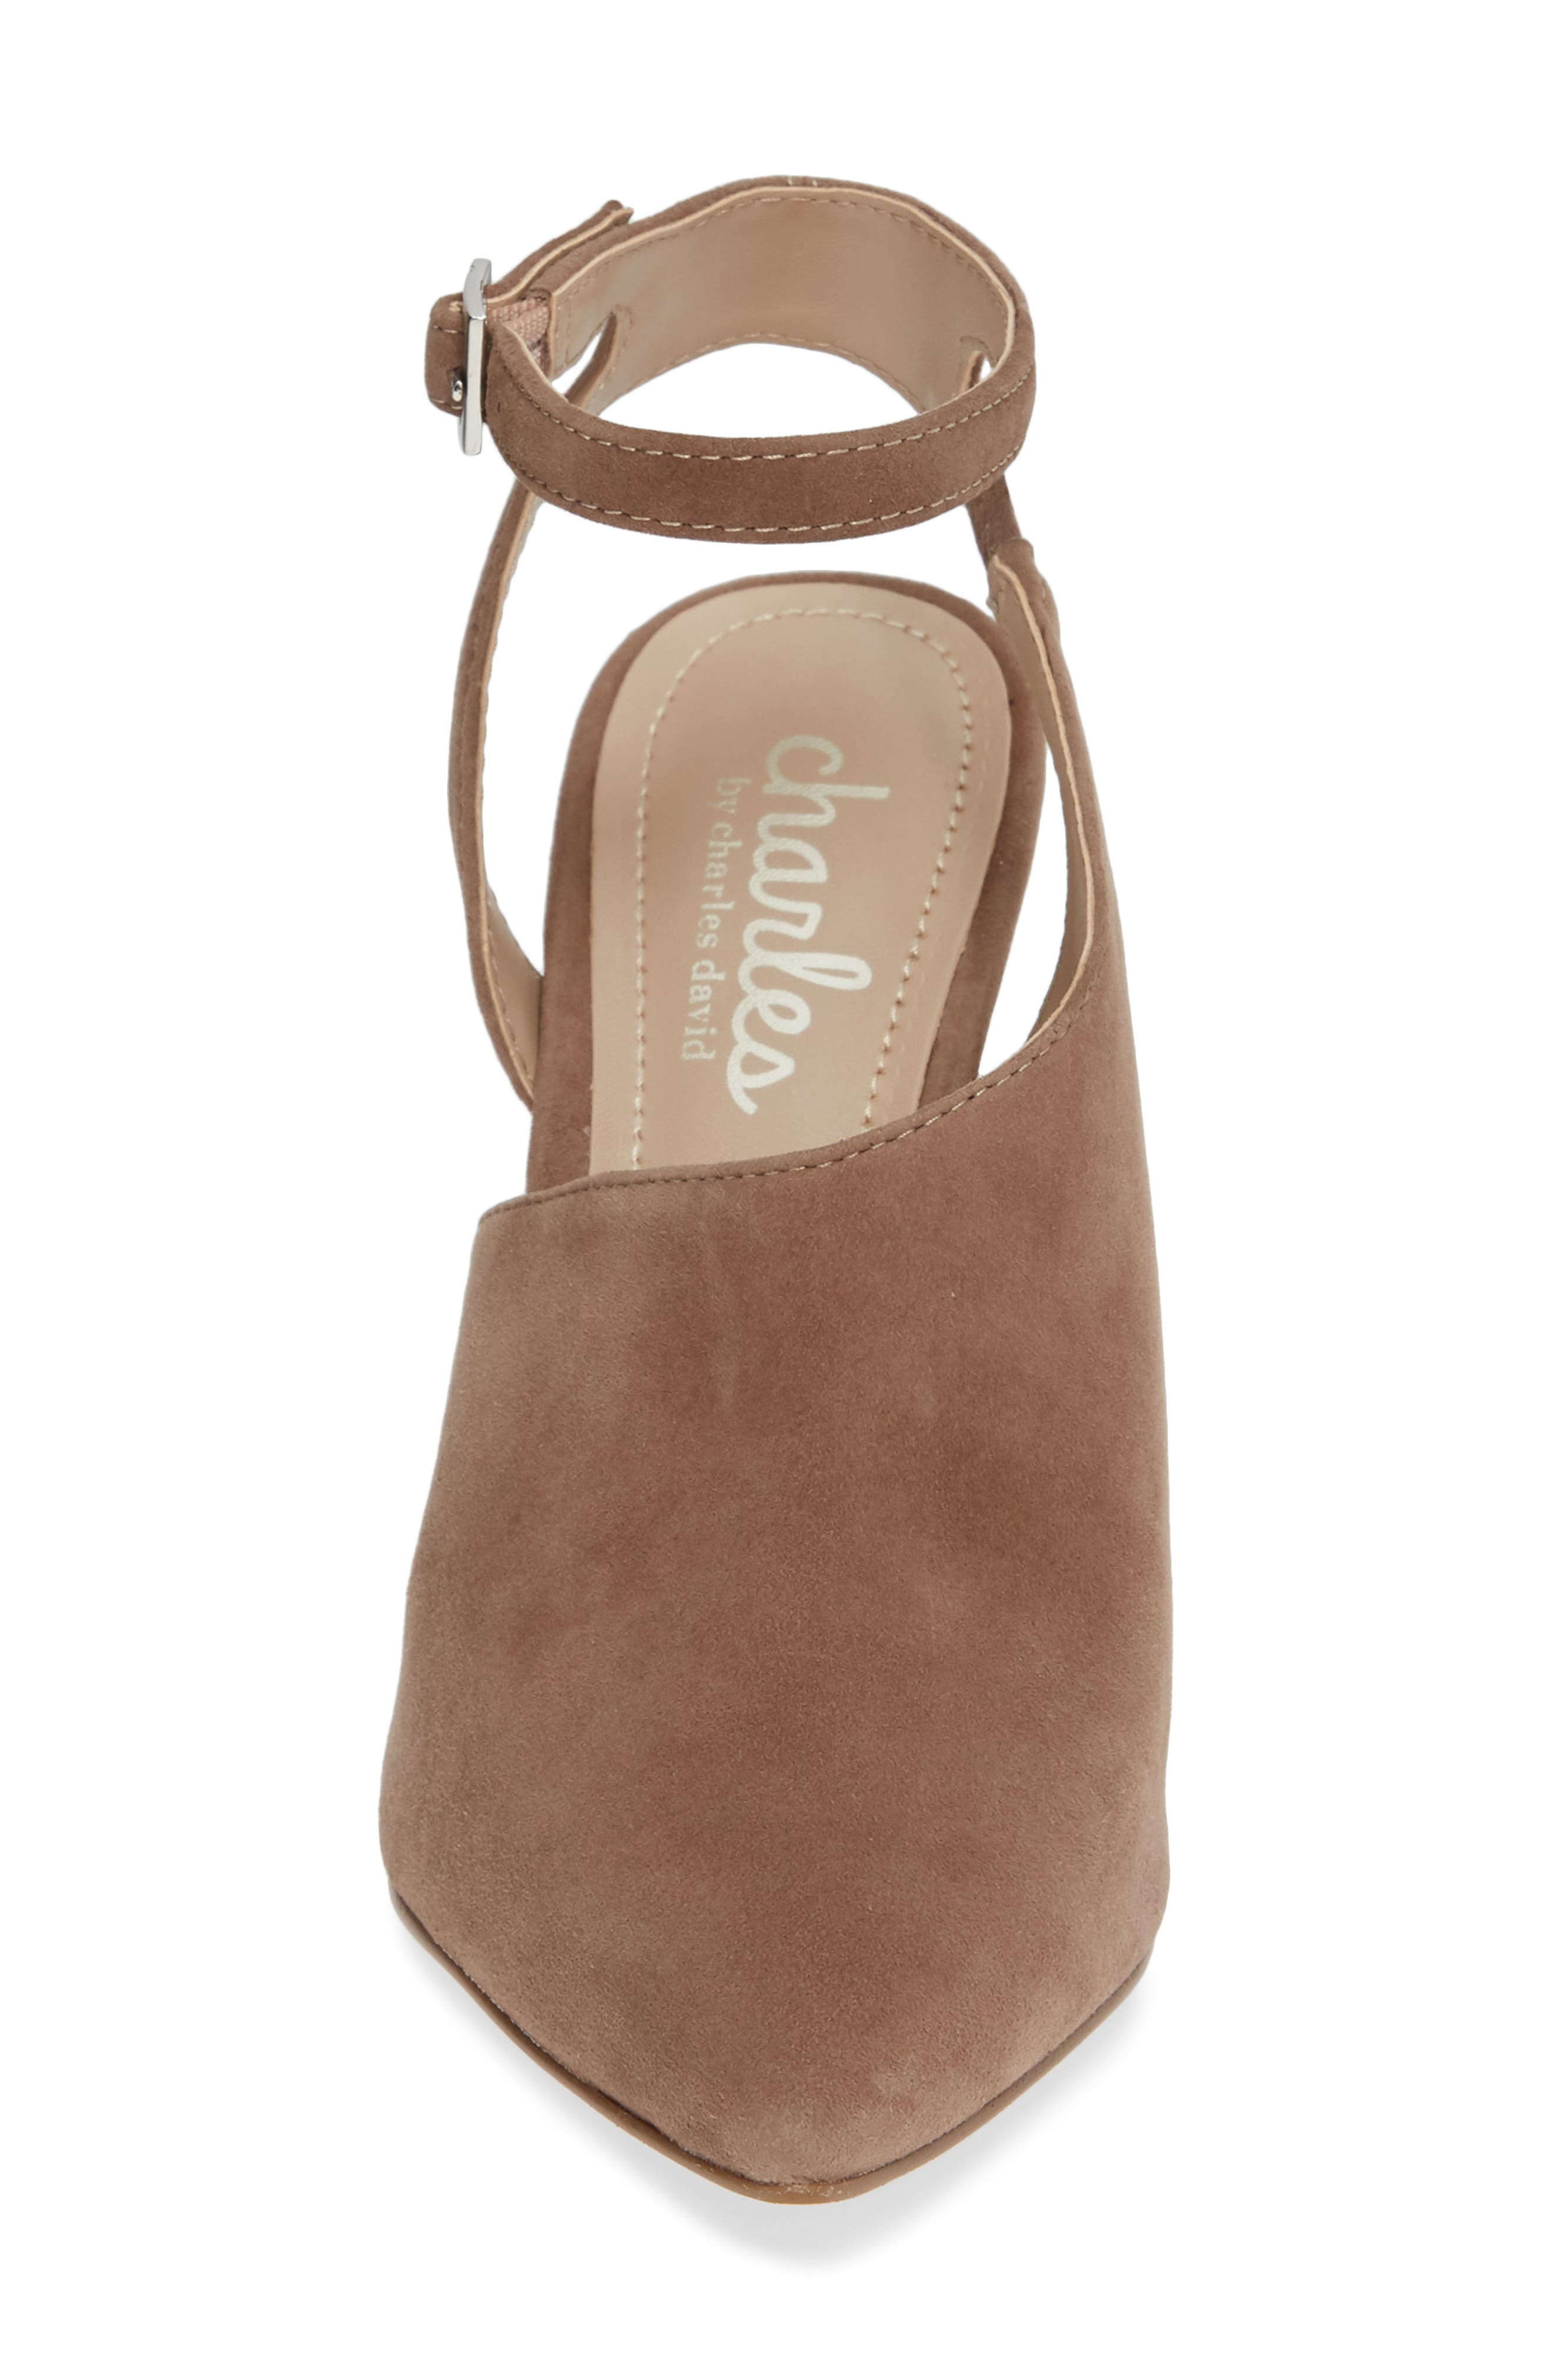 CHARLES BY CHARLES DAVID, Mieko Pump, Alternate thumbnail 4, color, TAUPE SUEDE